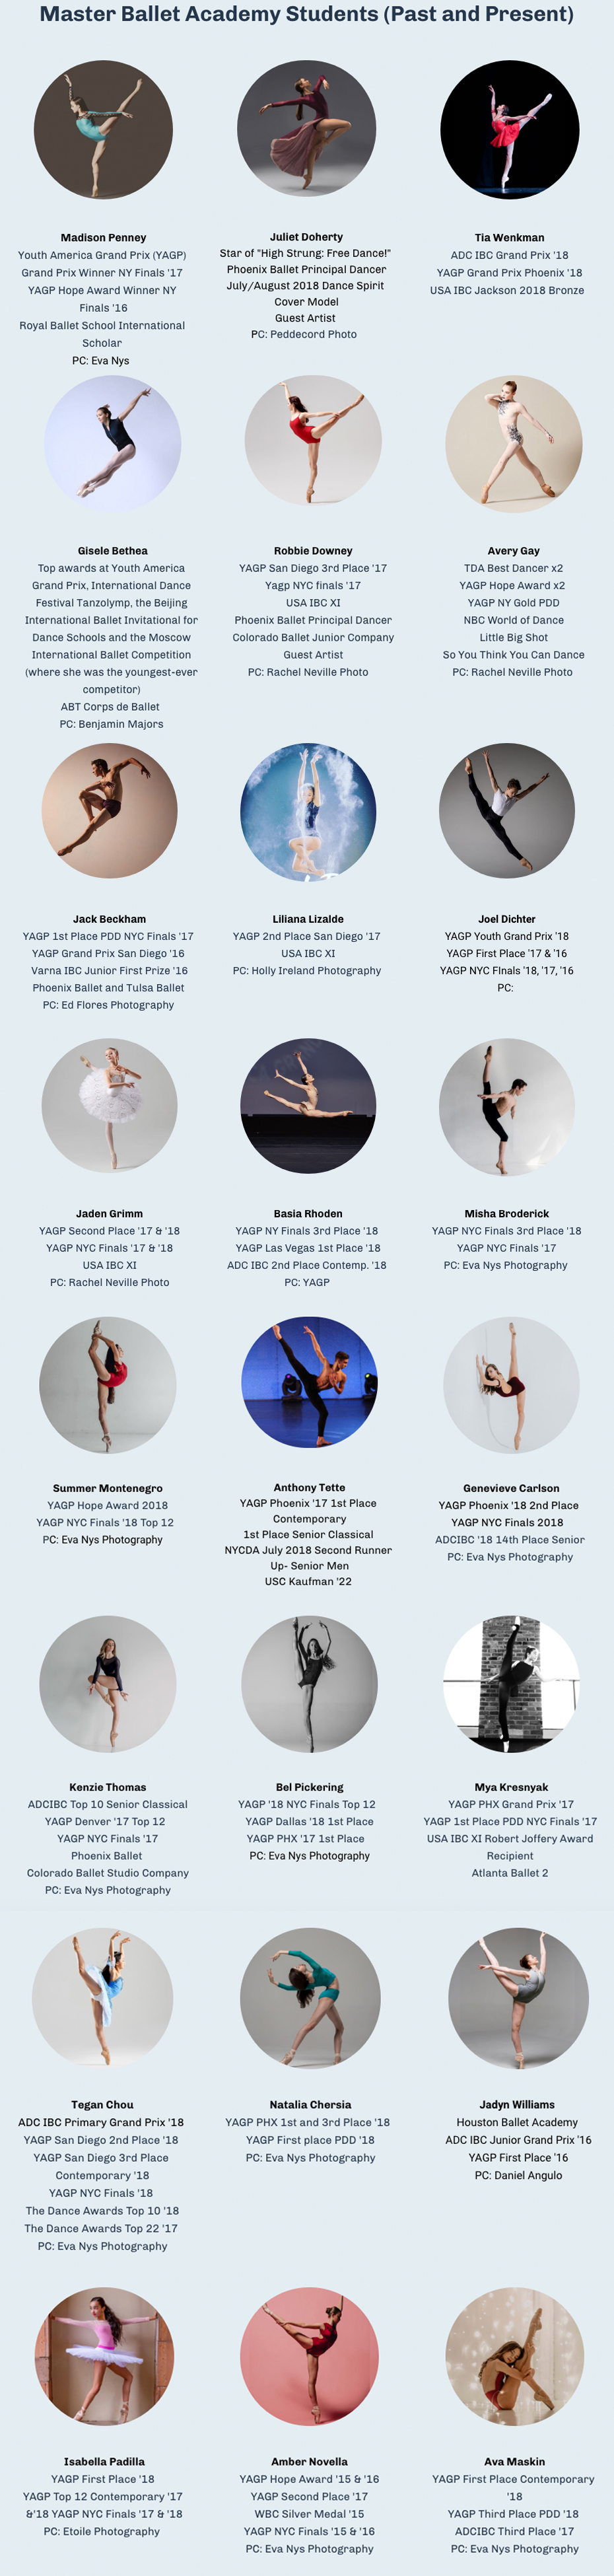 Perfect Pirouettes with Master Ballet Academy | Academy for